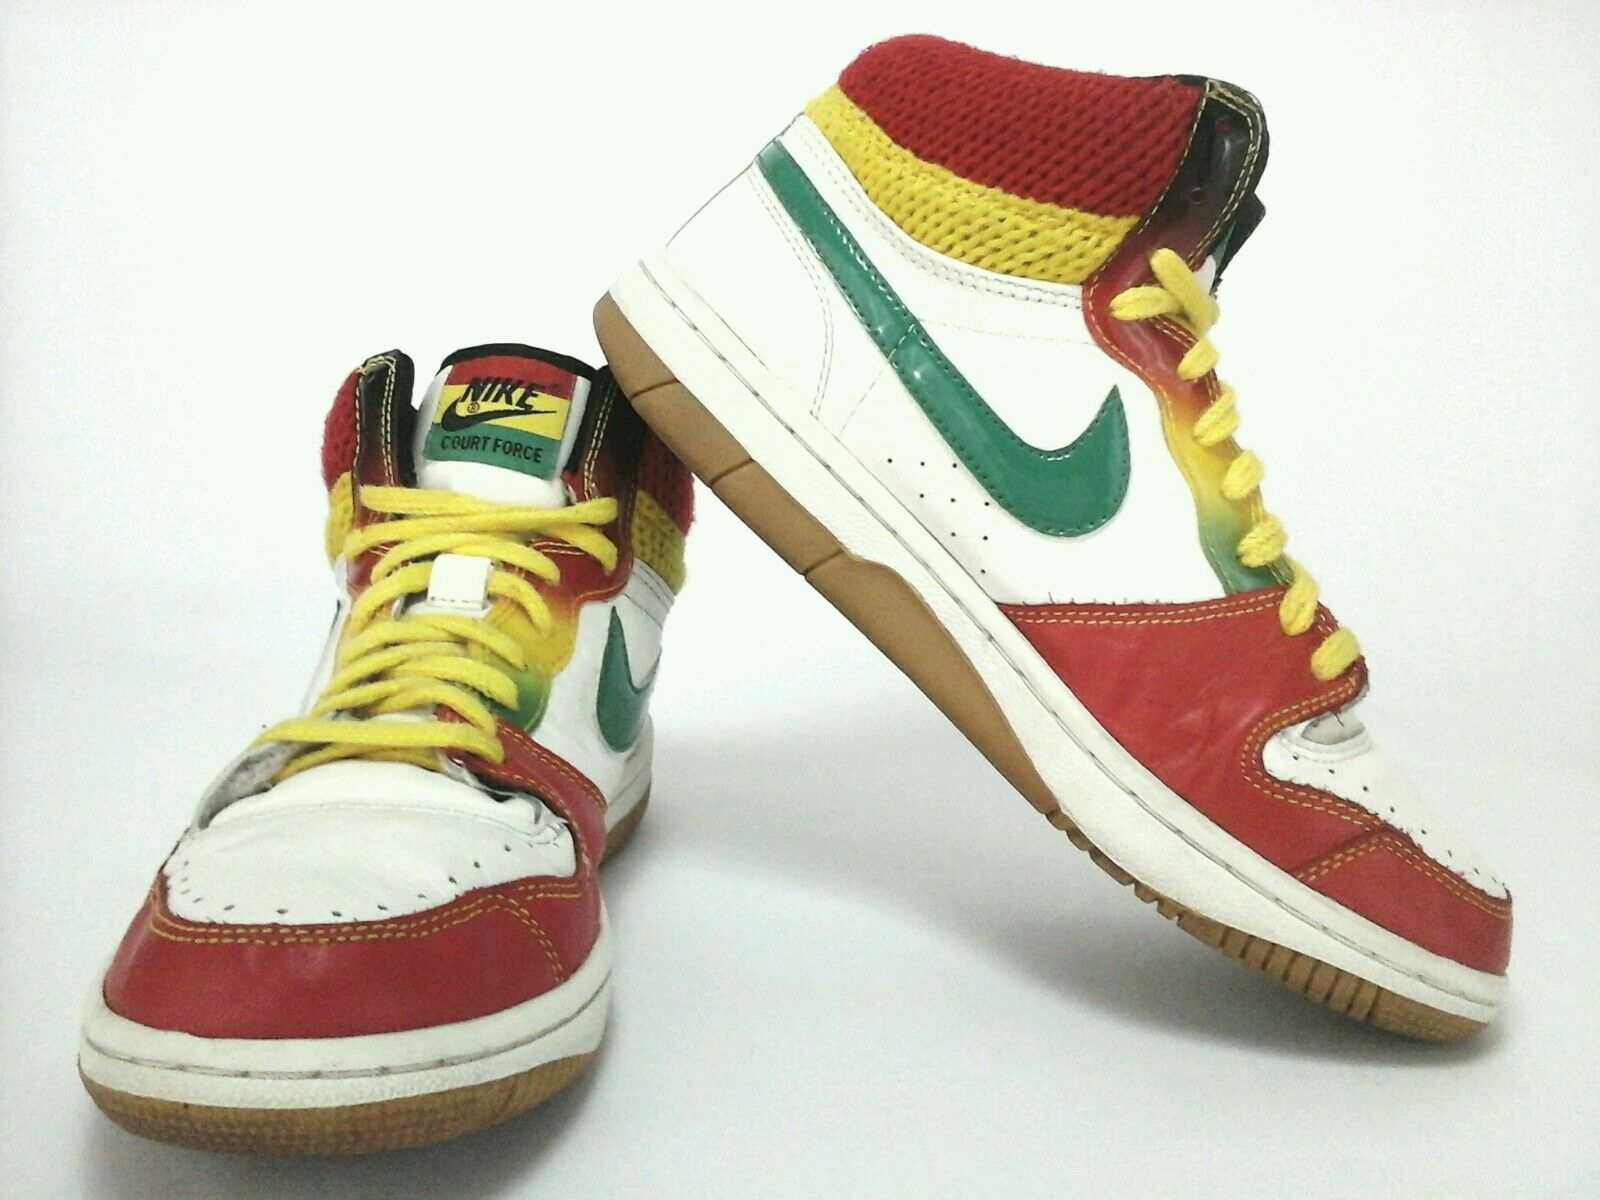 Nike Womens Court Force Roots Rock Raggae Mid Top Shoes Sneakers US 9.5